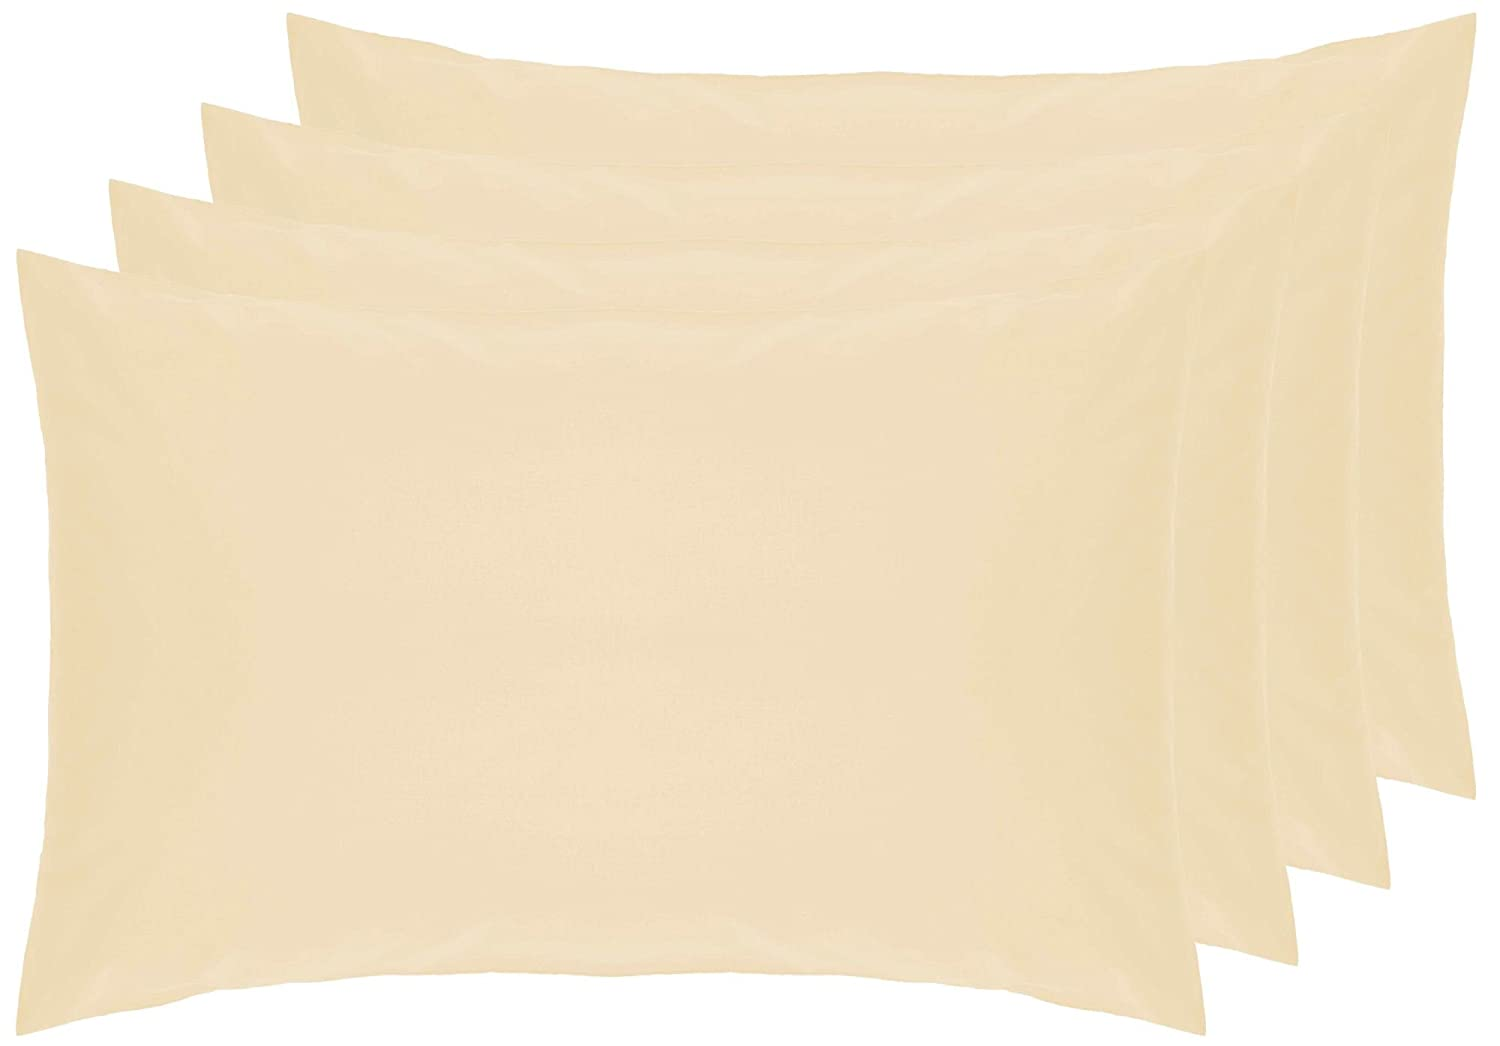 Belledorm 4 PACK Black Pillowcases, 200 Thread Count Percale (Housewife)